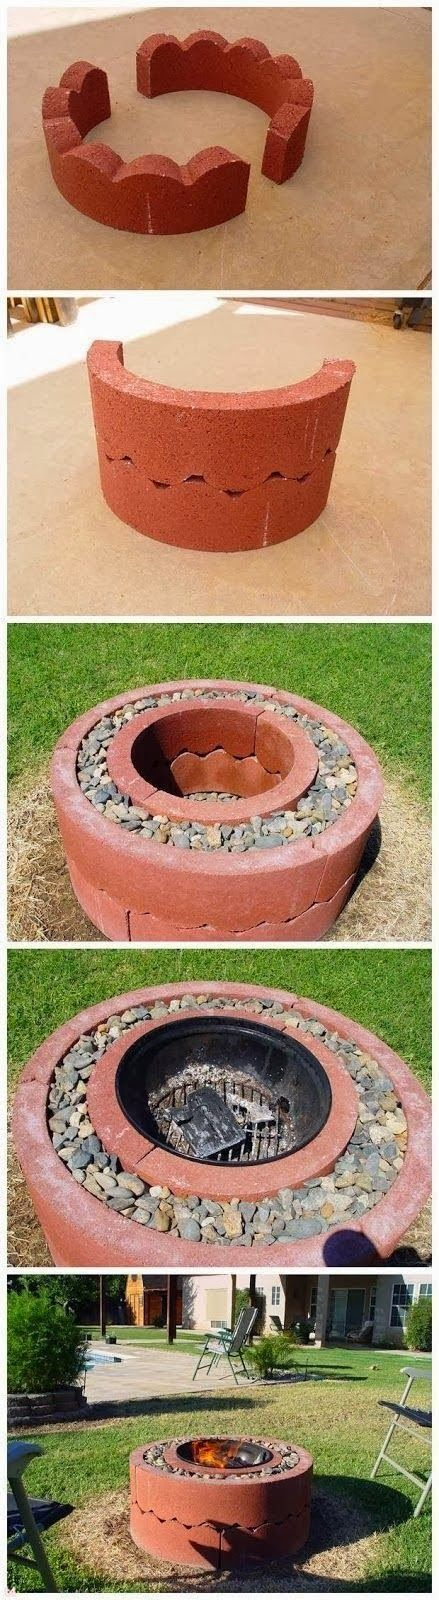 Not sure if we have concrete tree rings in the UK but this is on of the best DIY fire pits I've seen.